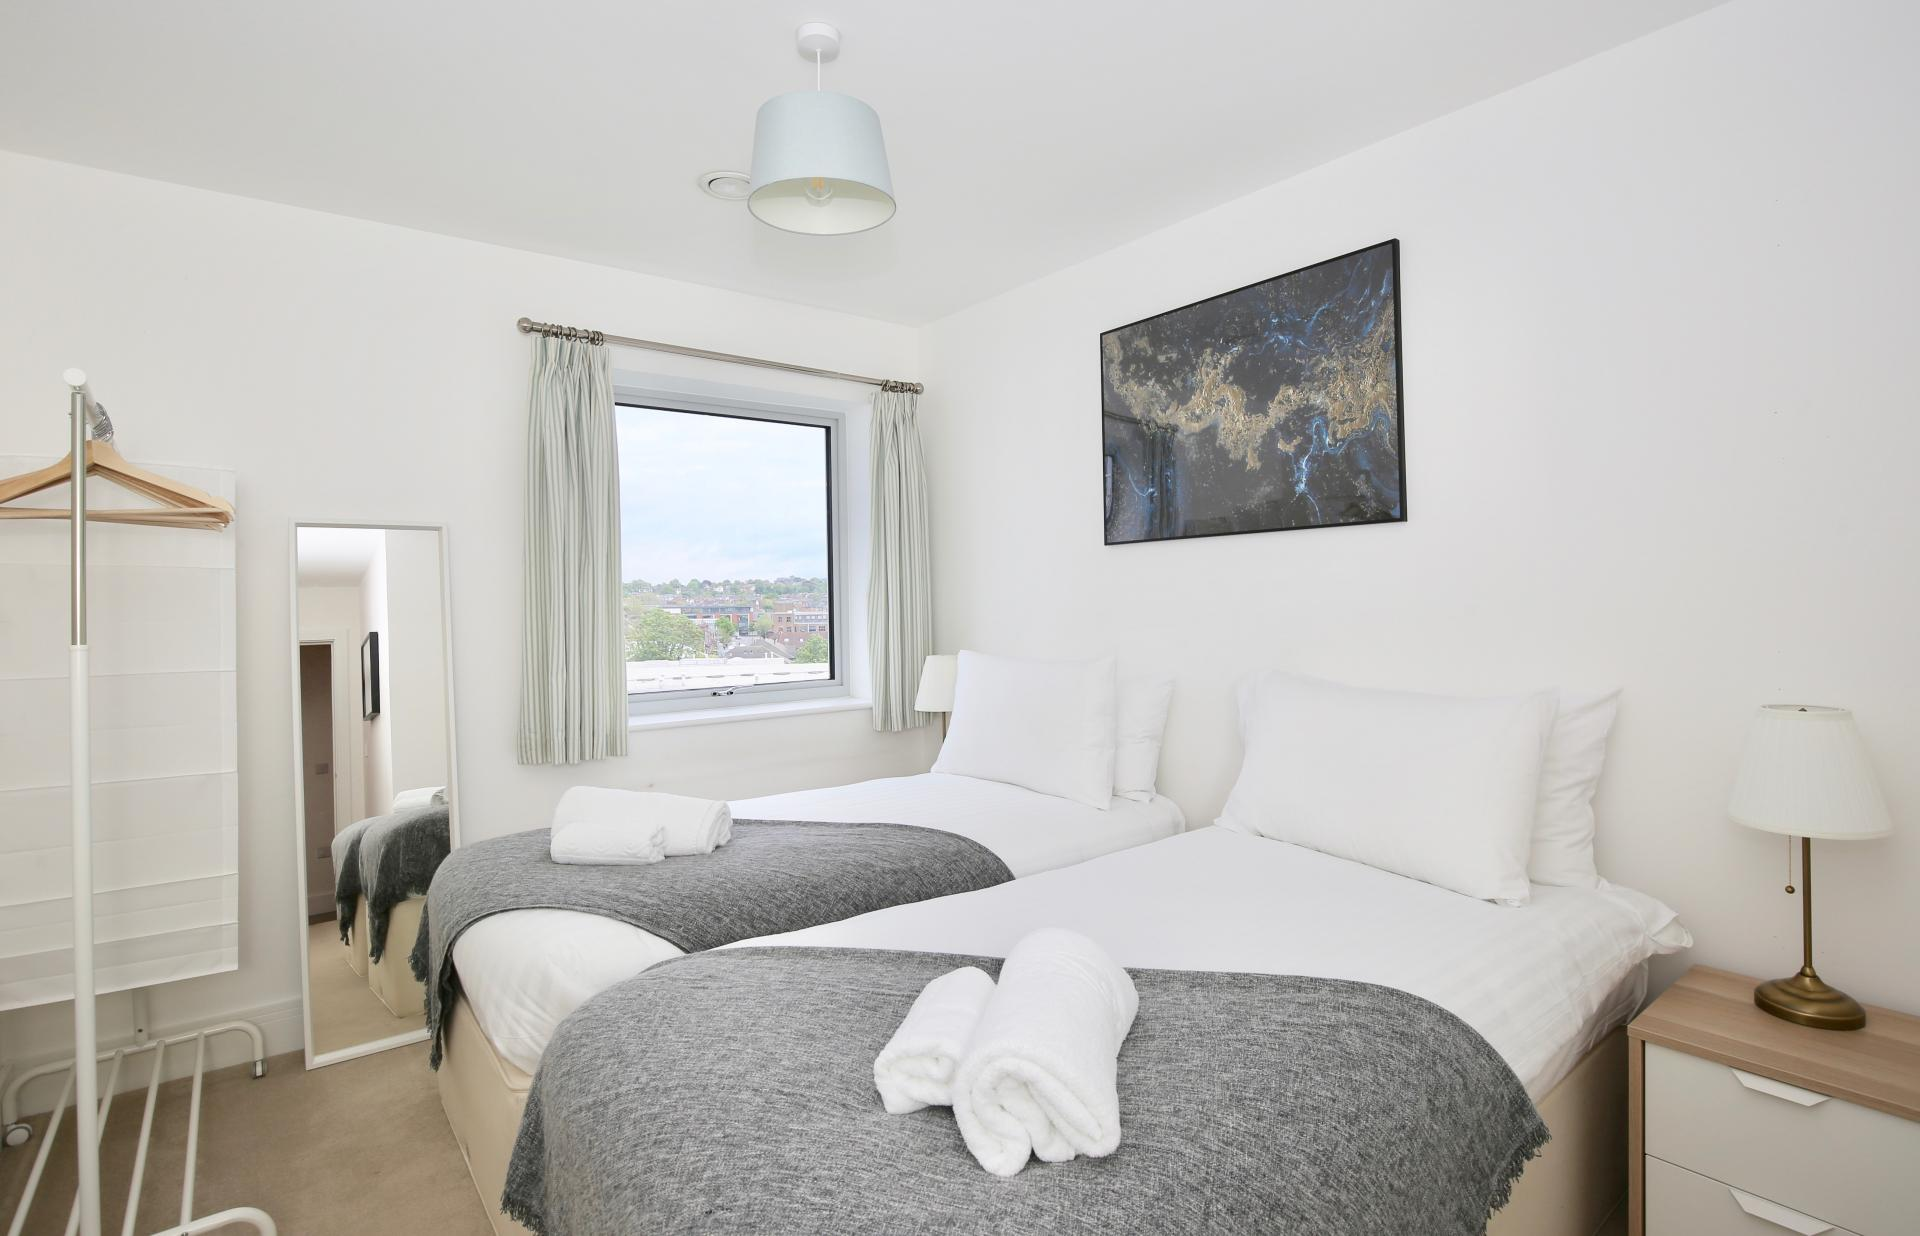 Beds at Austen House, Centre, Guildford - Citybase Apartments